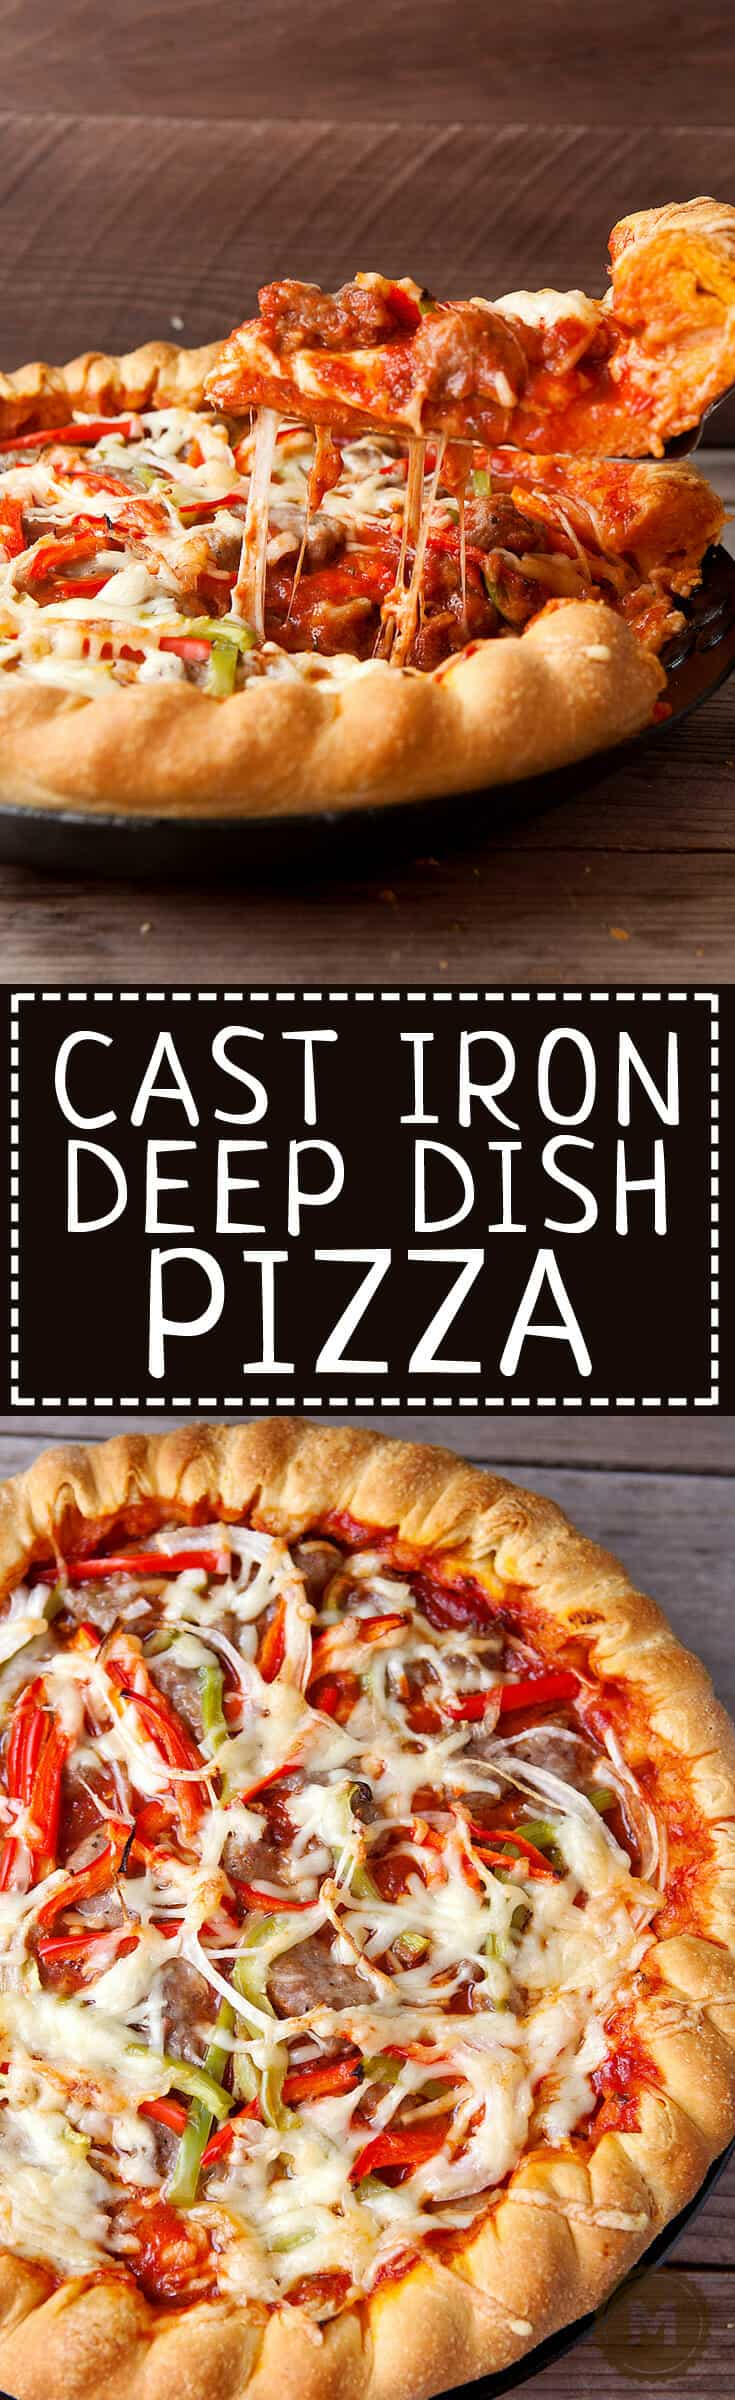 Cast Iron Deep Dish Pizza: This pizza is loaded with toppings and cheese and compiled in the traditional deep dish order (cheese on the bottom)! Cooking it in a cast iron skillet gives it a perfect, crispy crust. Included is my favorite homemade deep dish pizza crust recipe, but you can also make it with store-bought crust!